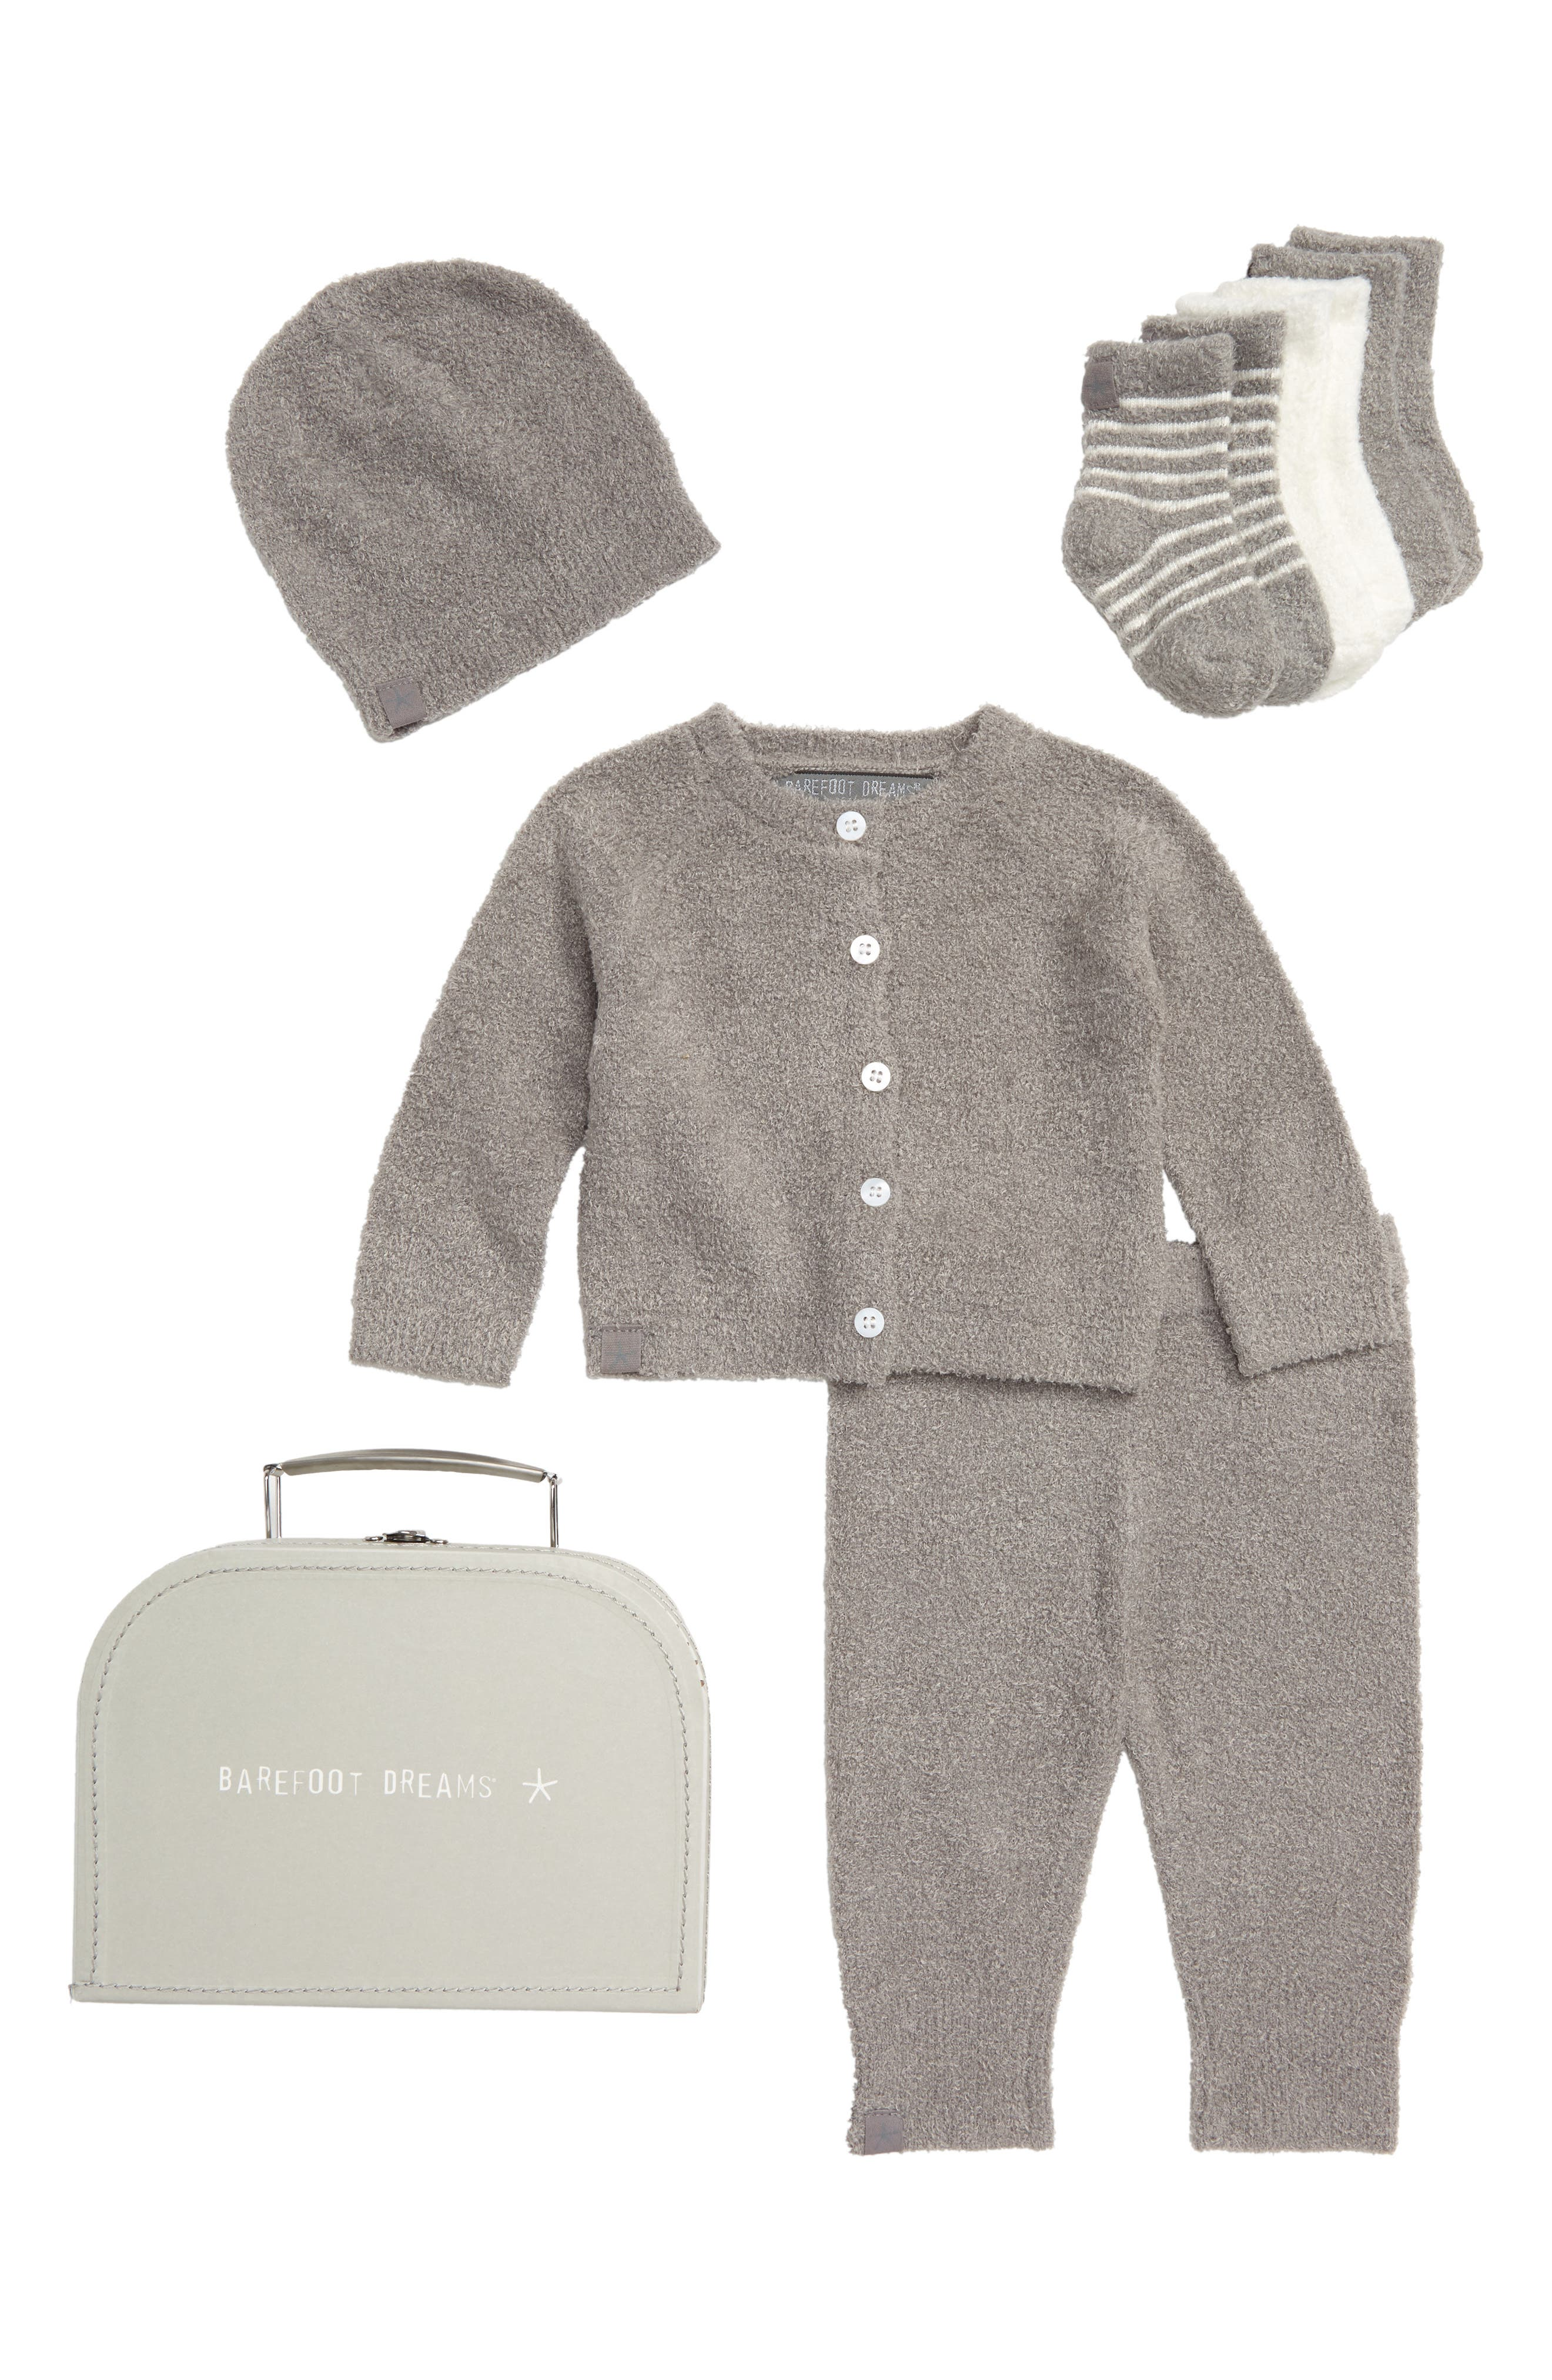 BAREFOOT DREAMS<SUP>®</SUP> CozyChic<sup>®</sup> Lite Classic Cardigan, Pants, Socks, Beanie & Suitcase Set, Main, color, PEWTER